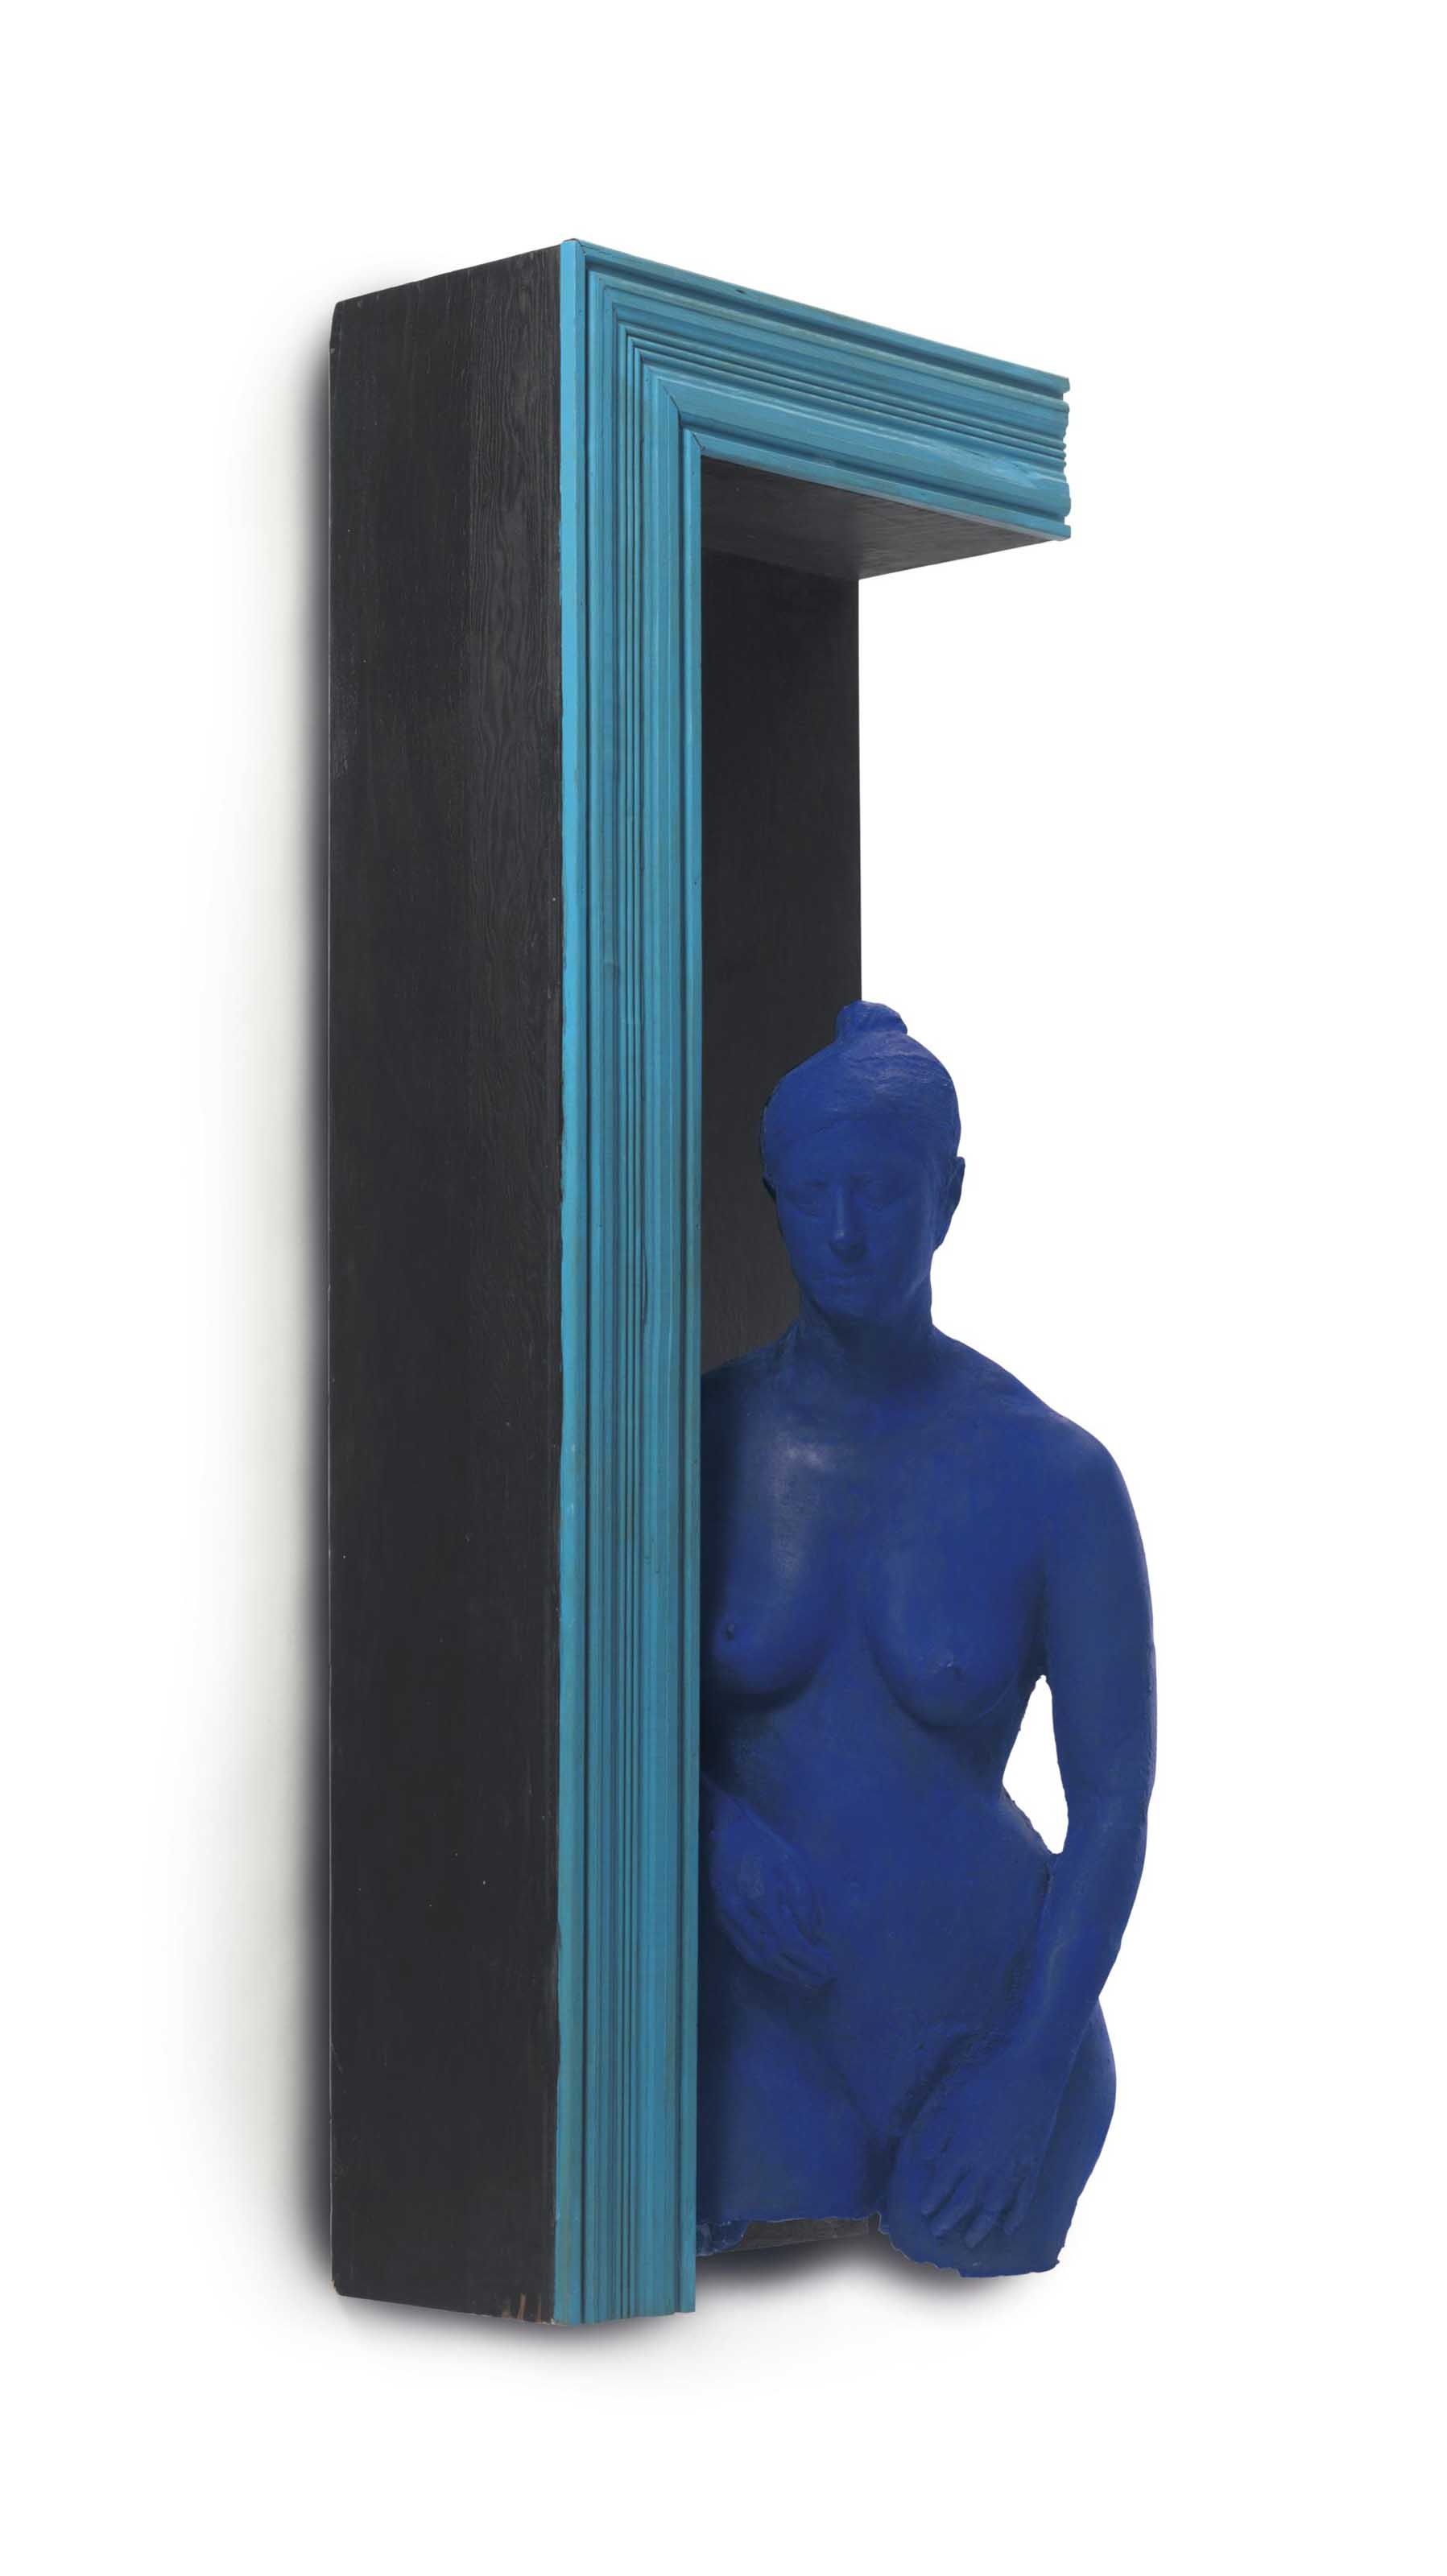 Blue Girl in Black Doorway